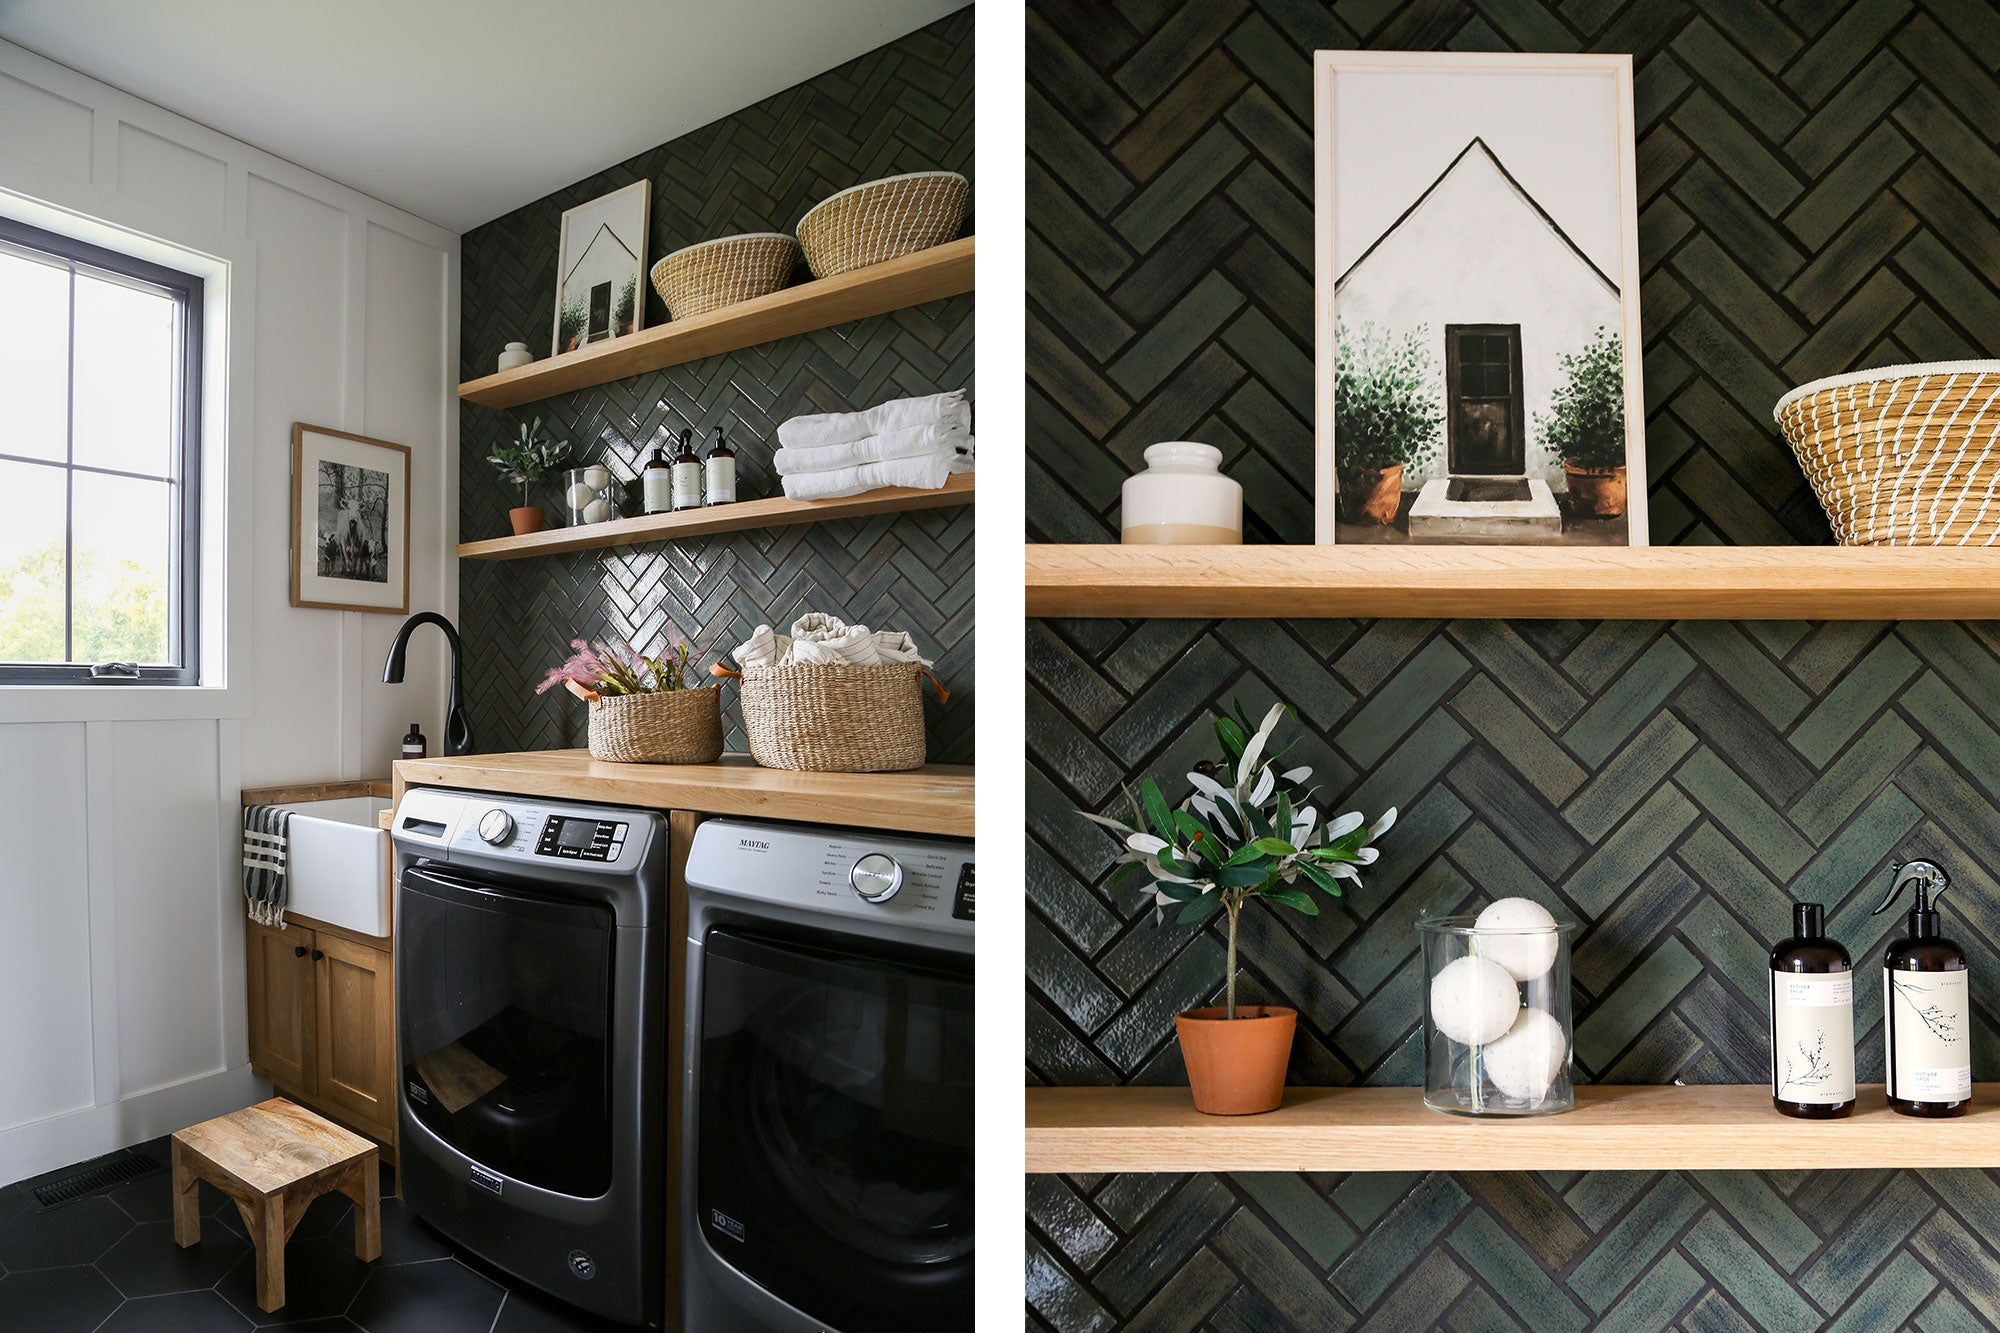 Laundry Room Herringbone Ceramic Tile Green